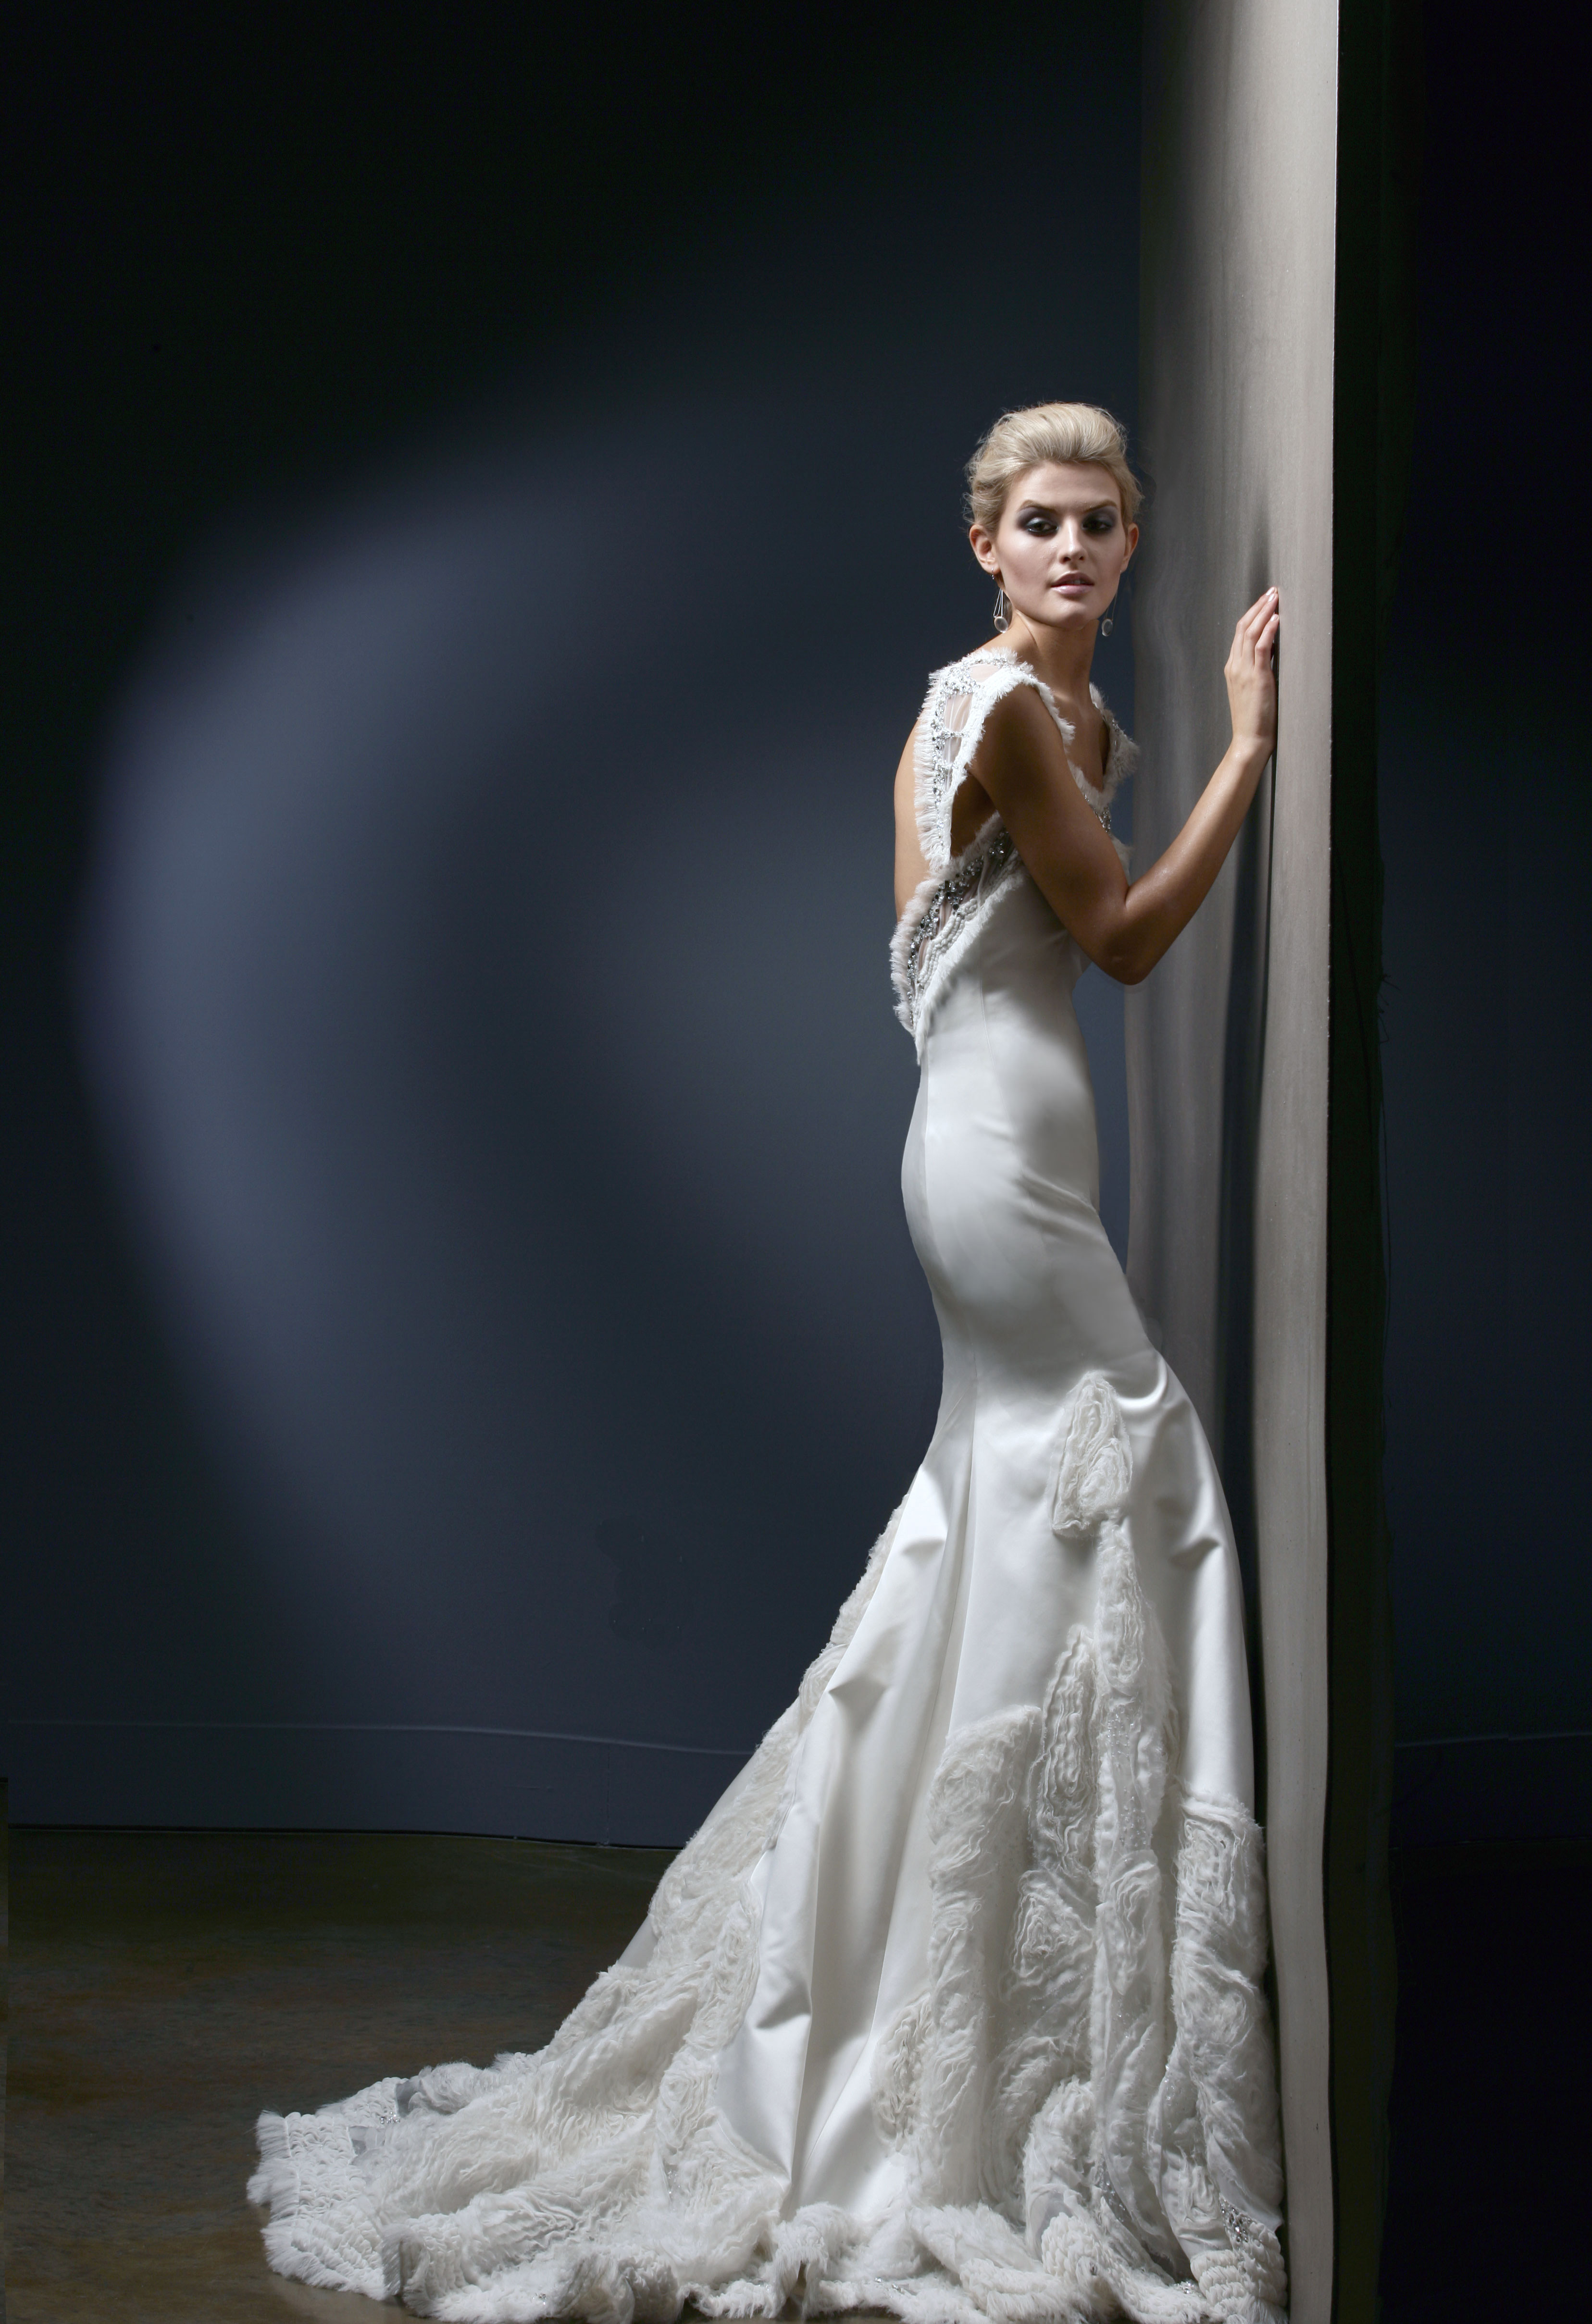 Bridal gown designer Selia Yang - bridal gowns